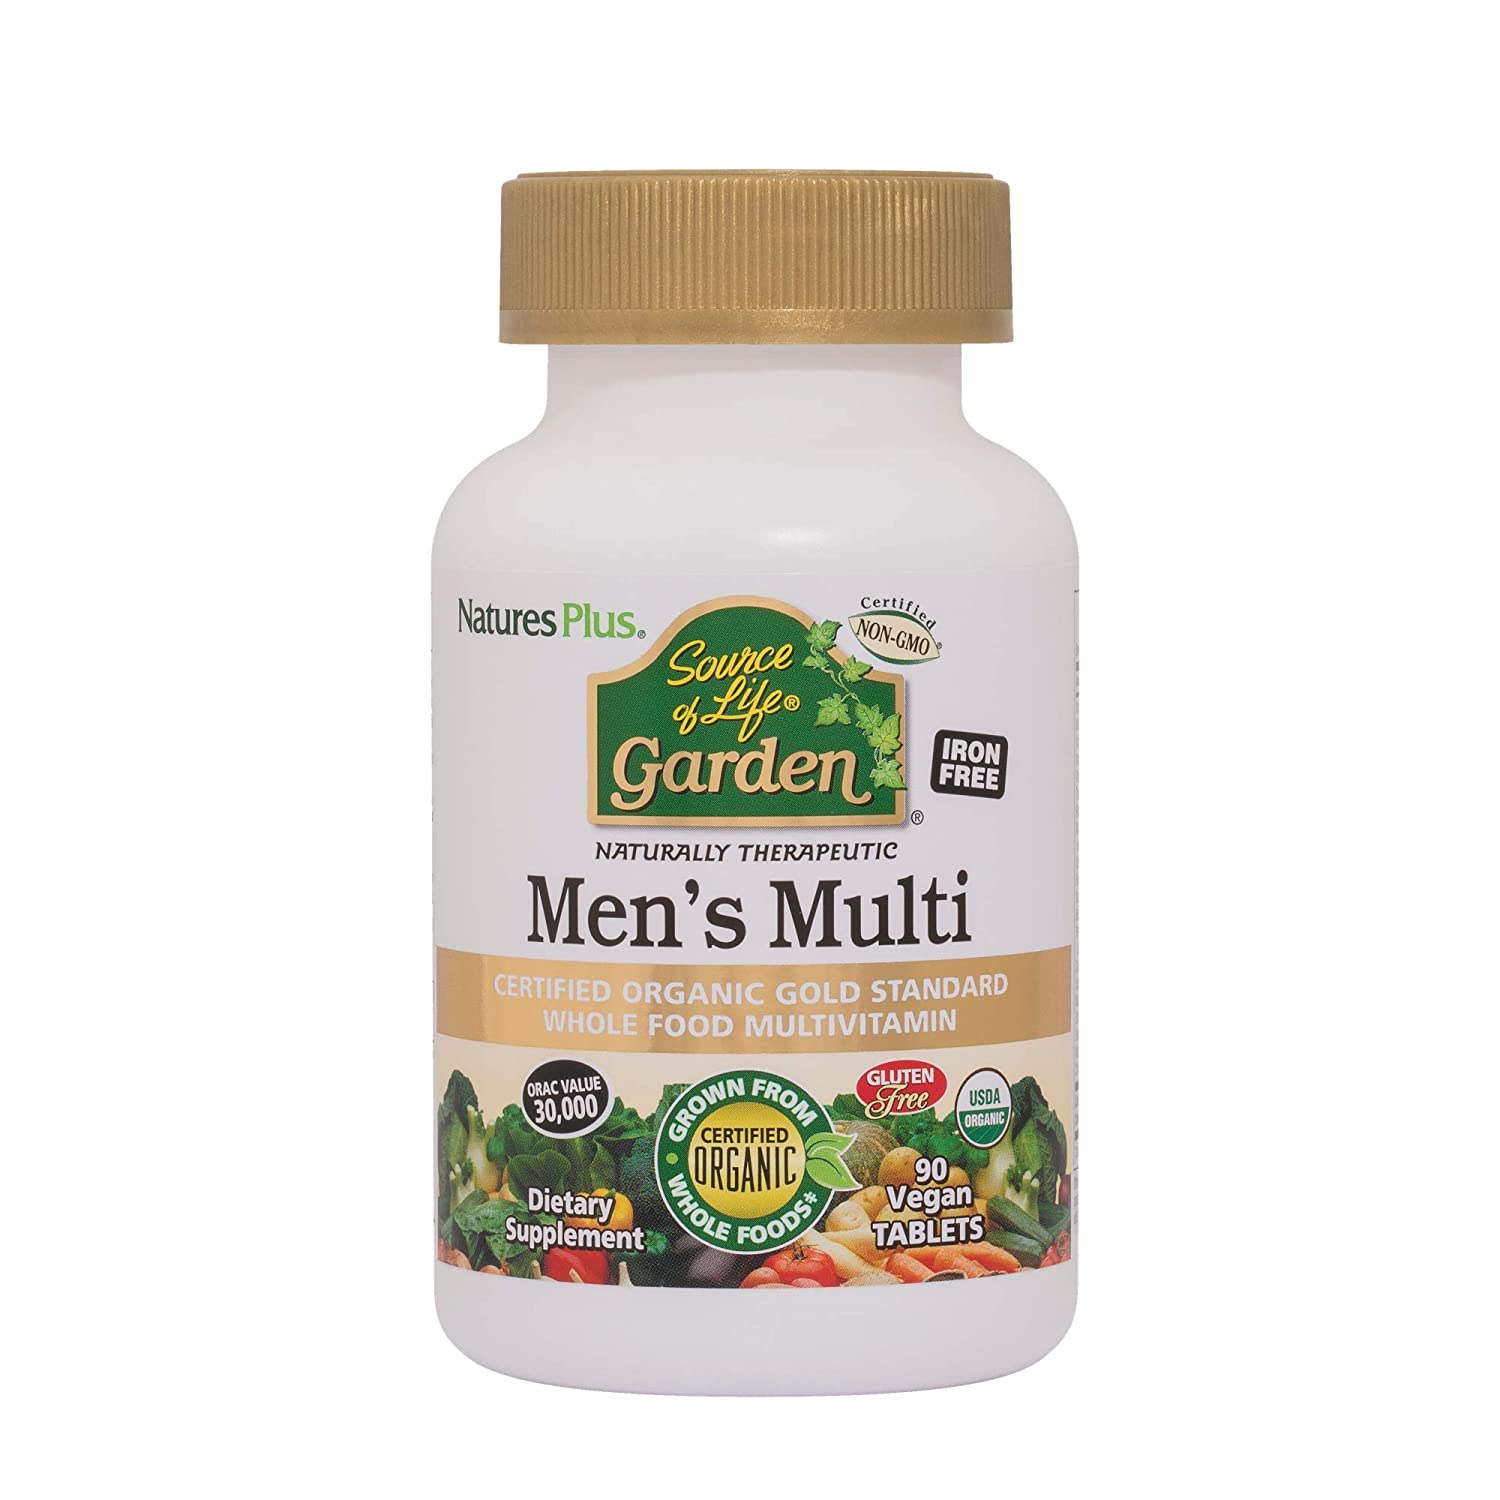 NaturesPlus Source of Life Garden Certified Organic Mens Multivitamin – 90 Vegan Tablets – Pure, Natural Whole Food Ingredients – Energy Boost – Vegetarian, Gluten-Free – 30 Servings